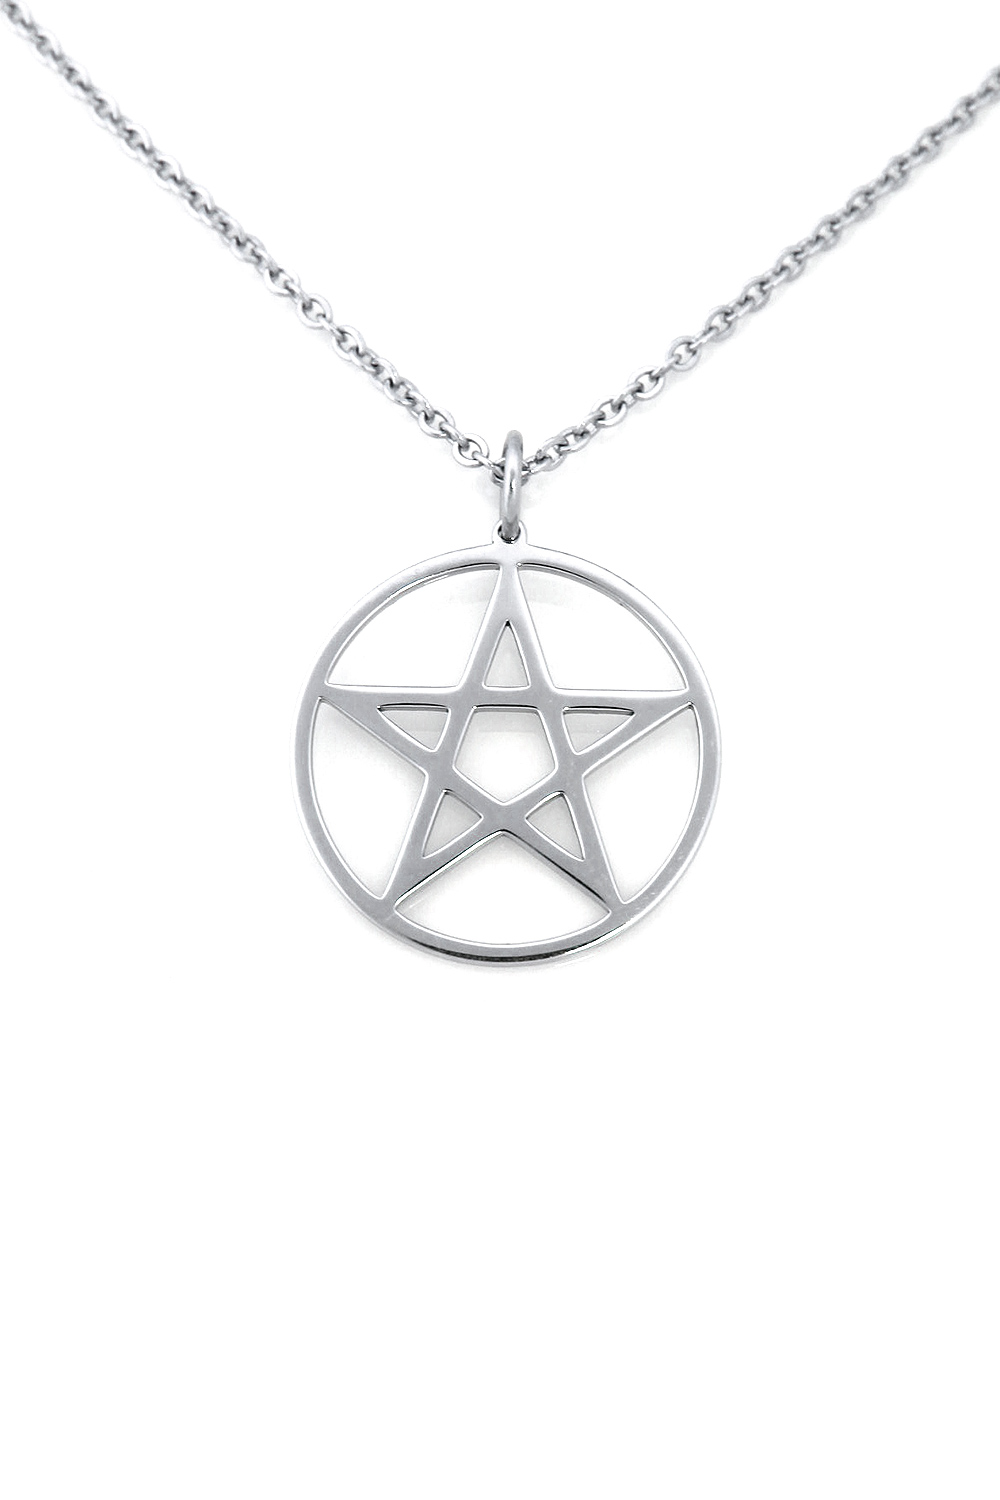 [SYMPHONYOFSYMBOLS] UPRIGHT PENTAGRAM NECKLACE